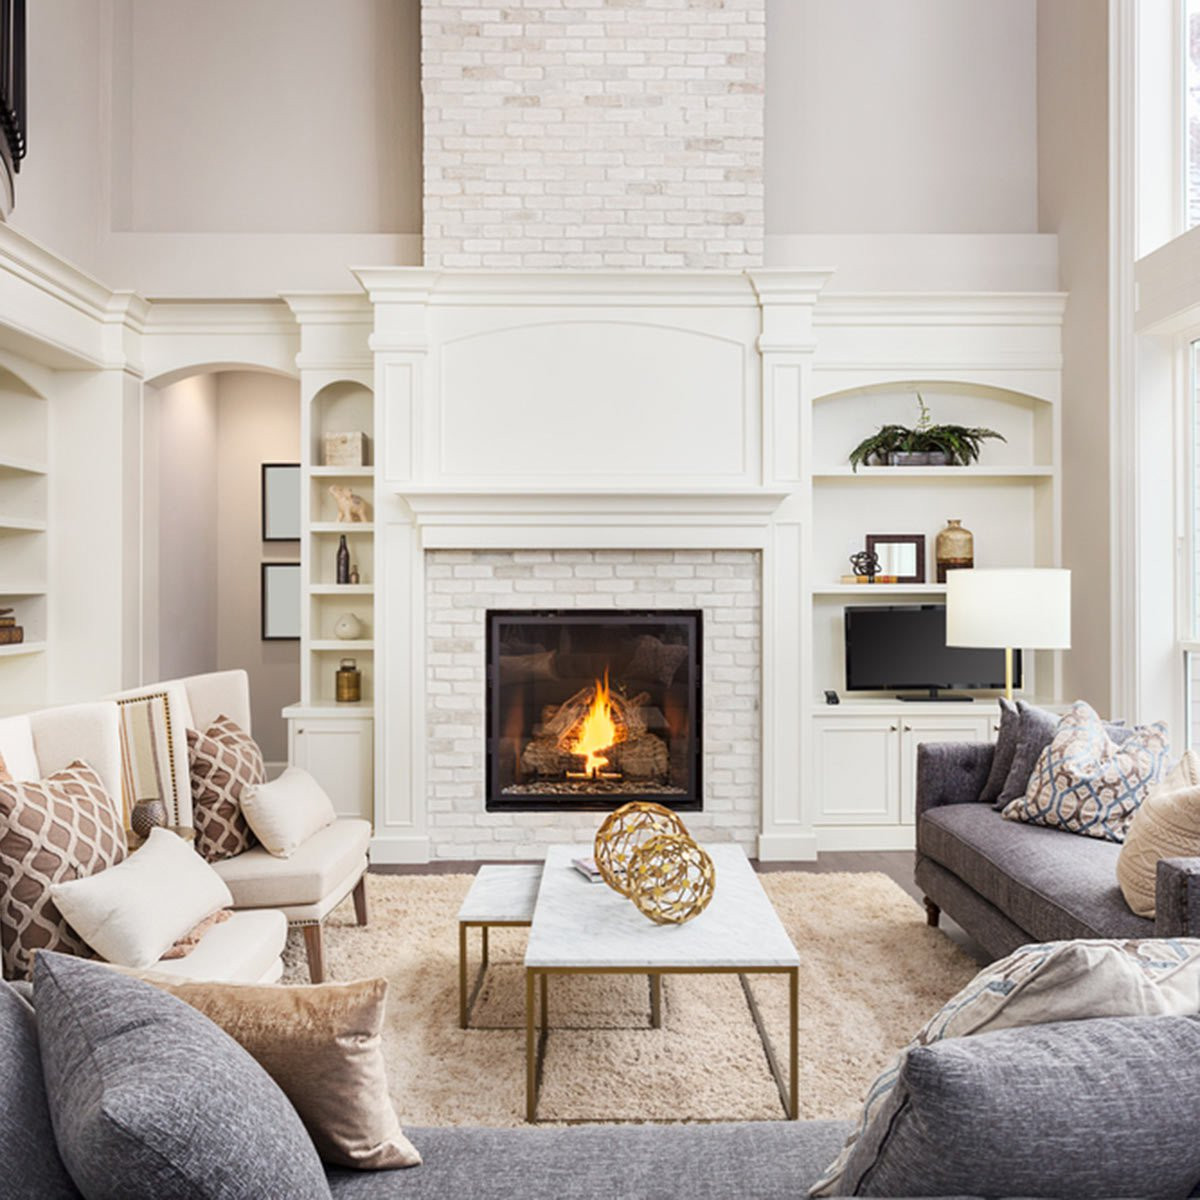 Best ideas about Fireplace Accent Walls . Save or Pin 15 Stunning Accent Wall Ideas You Can Do Now.